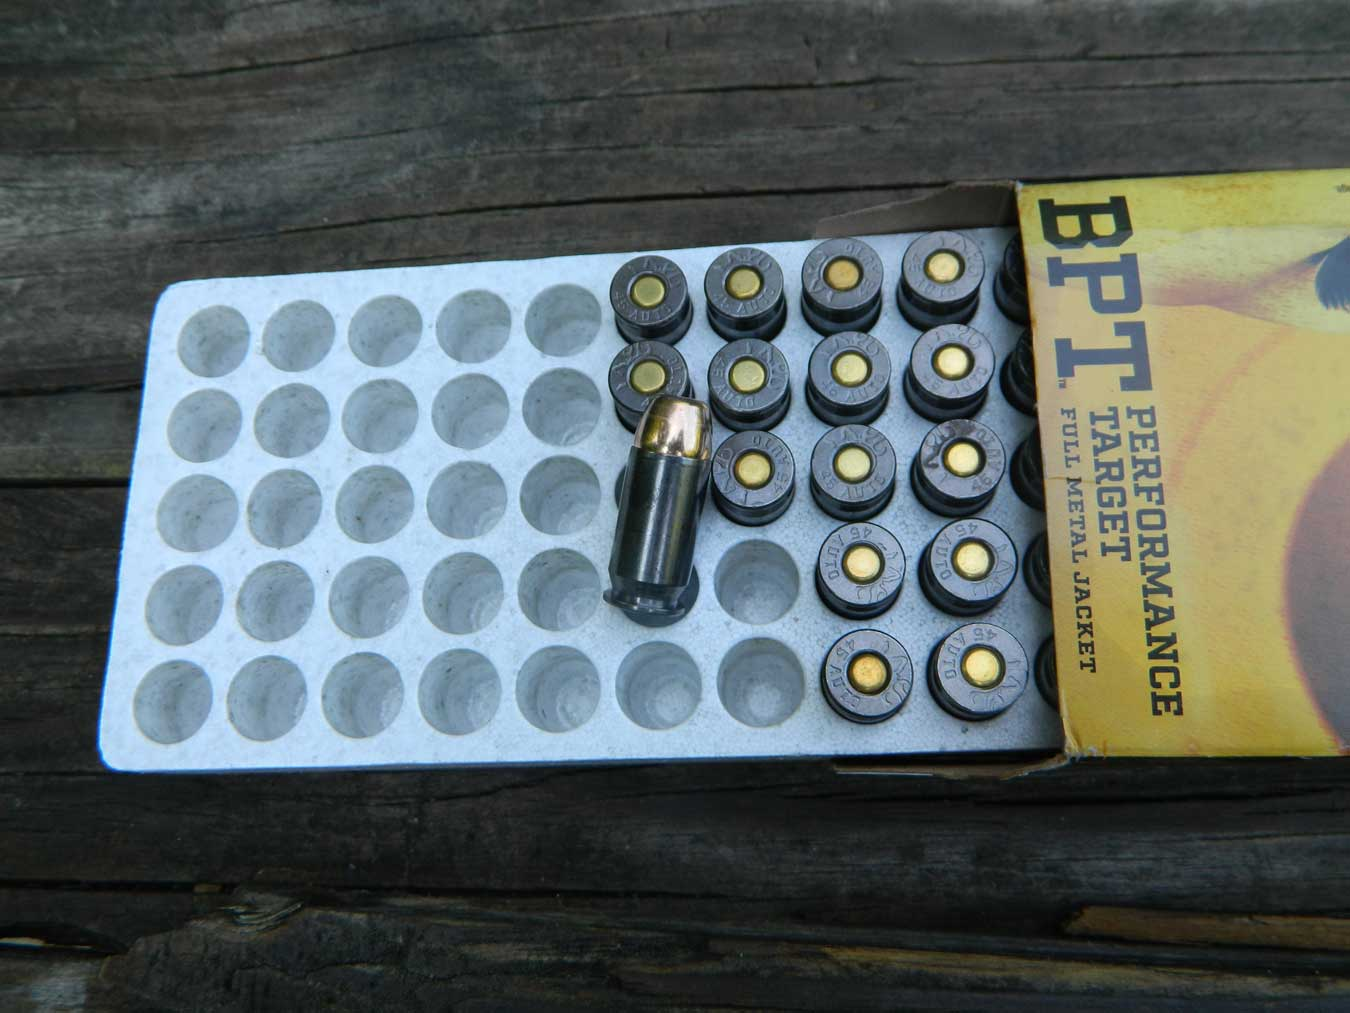 Open box of Browning Ammunition